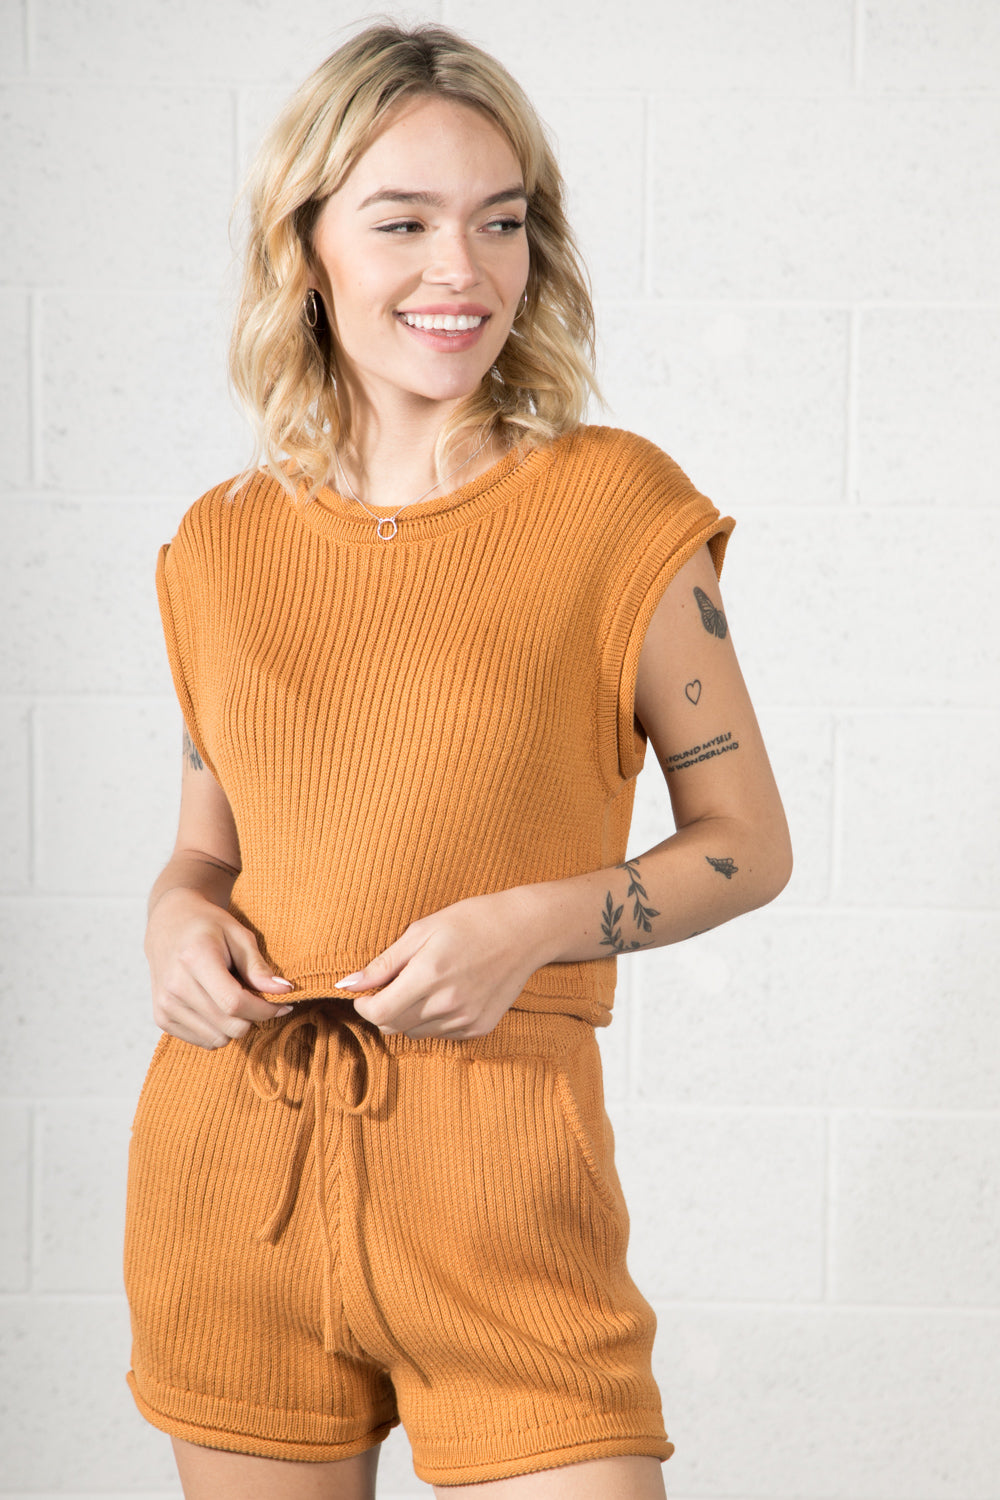 Mitzi Short Knit Top